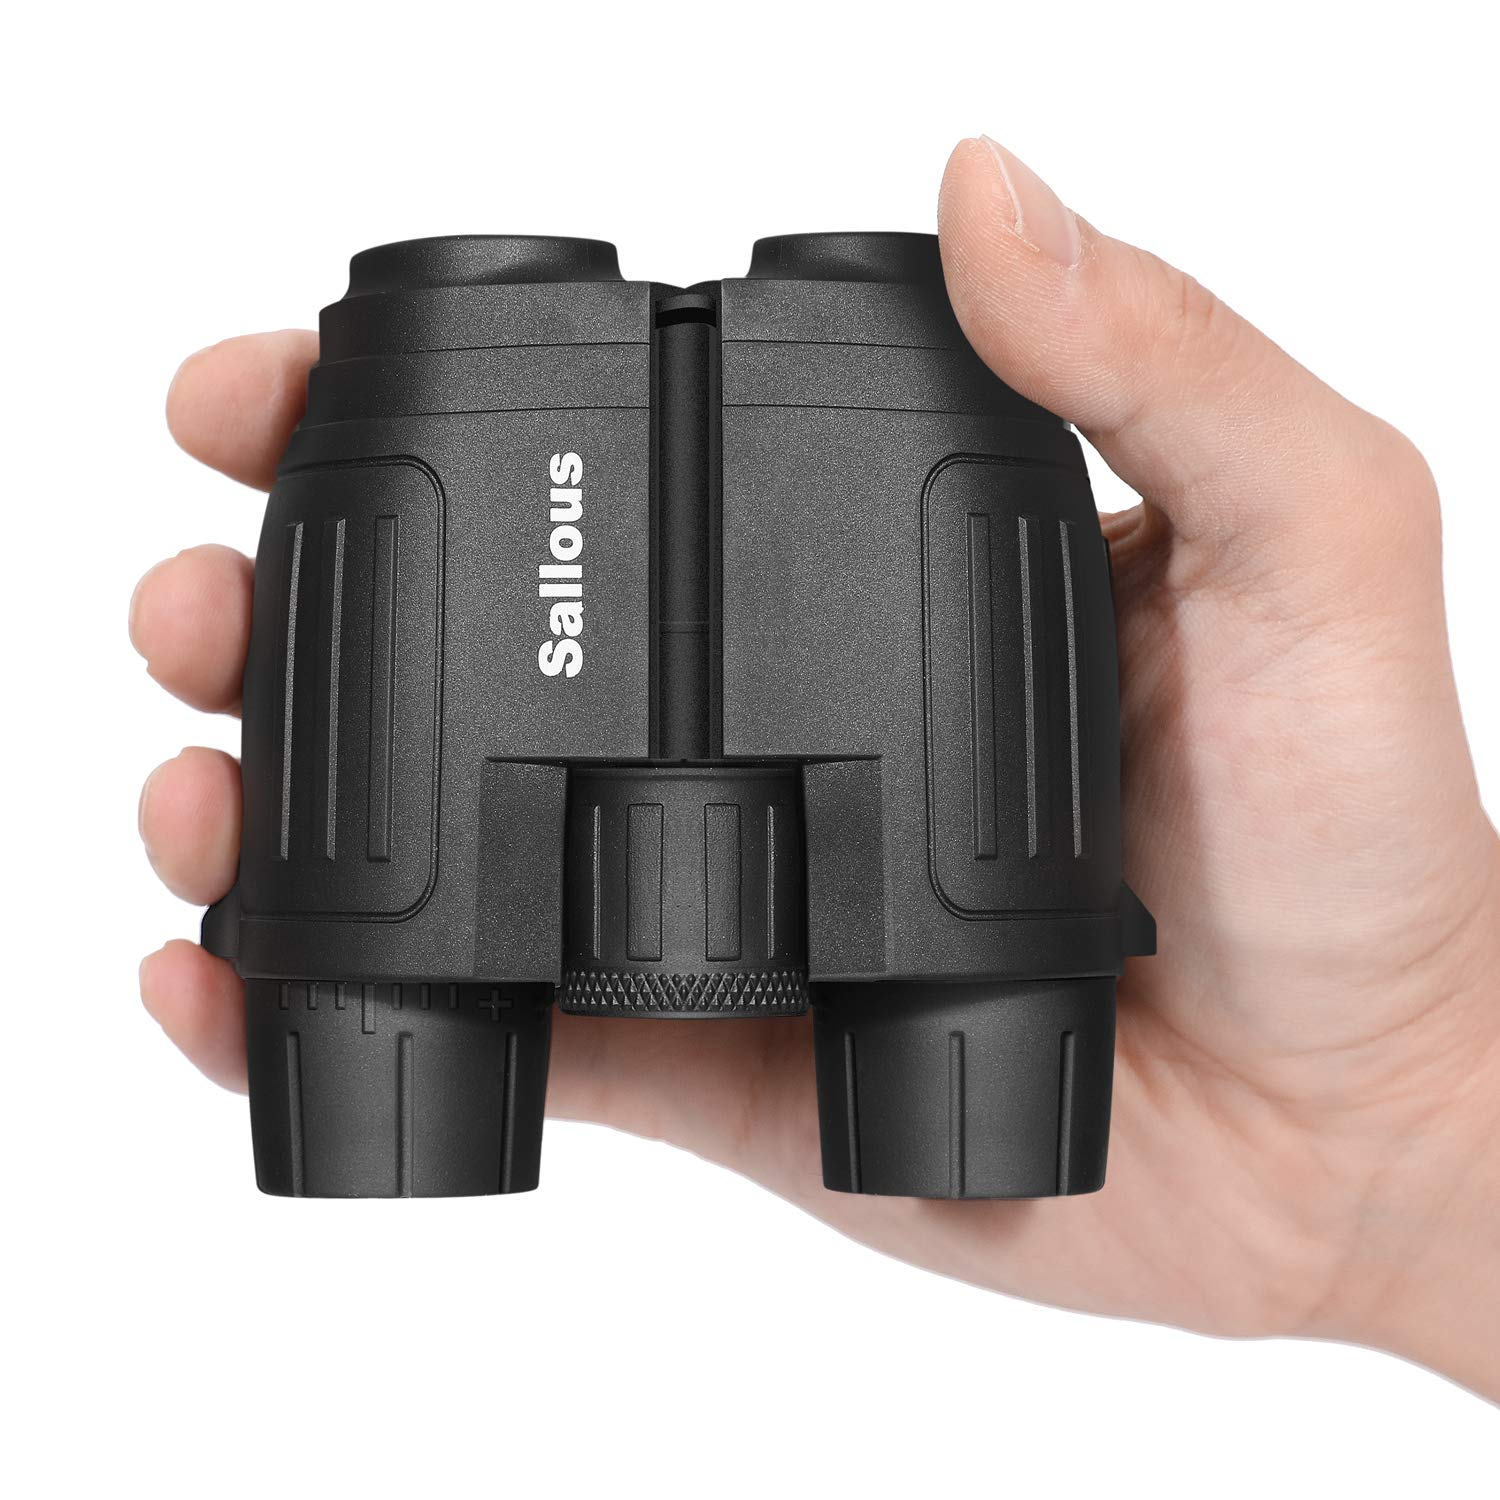 10X25 Small Compact Lightweight Binoculars for Adults Kids Bird Watching Traveling Hiking Wildlife Watching. Clear View, Easy to Focus. Pocket Folding Binocularsfor Opera Concert Theater Opera. by Sallous